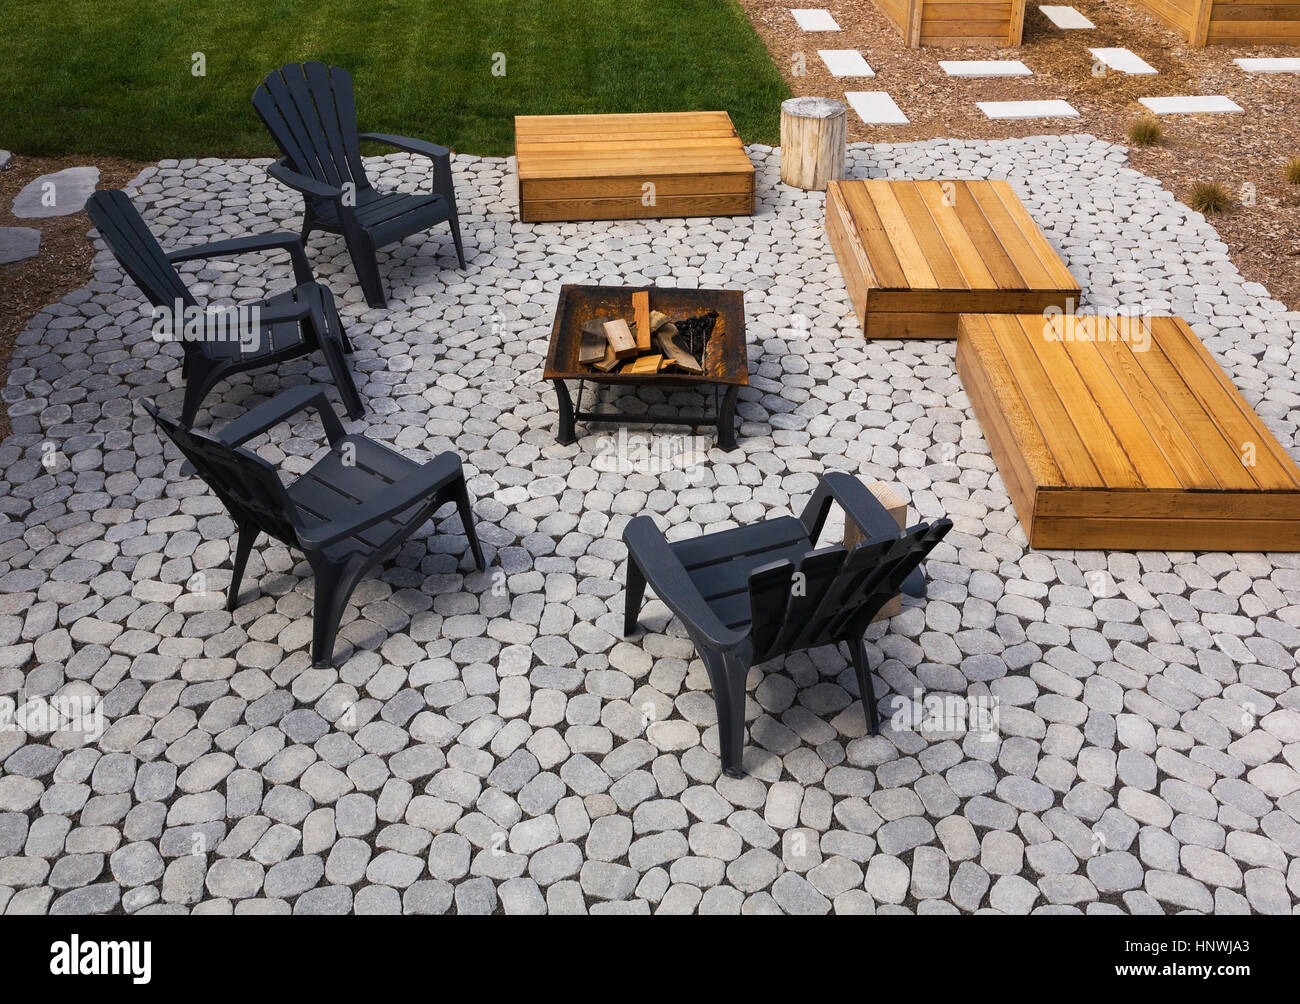 Cool Paving Stone Patio With Adirondack Chairs Red Cedar Wooden Machost Co Dining Chair Design Ideas Machostcouk